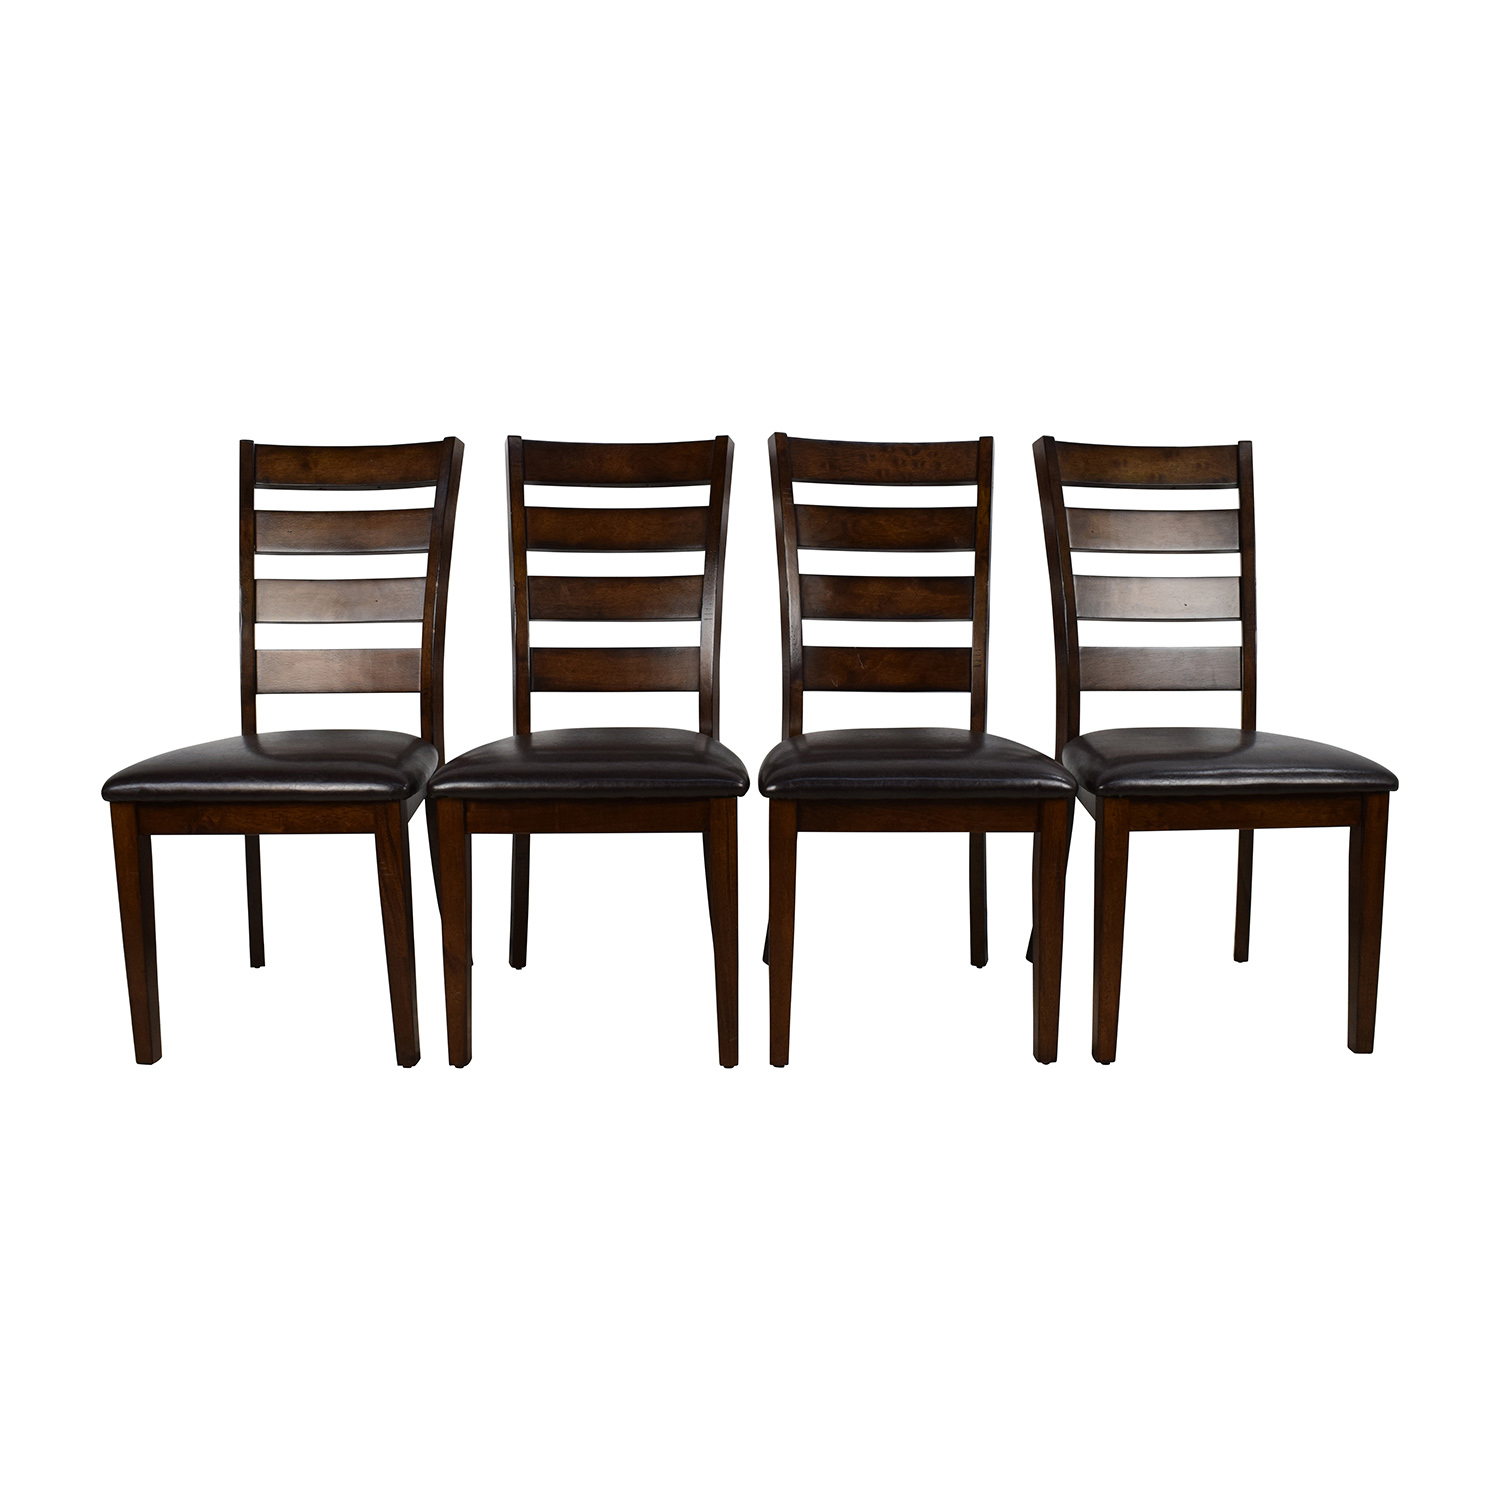 Raymour Flanigan Raymour & Flanigan Kona Dining Chairs for sale